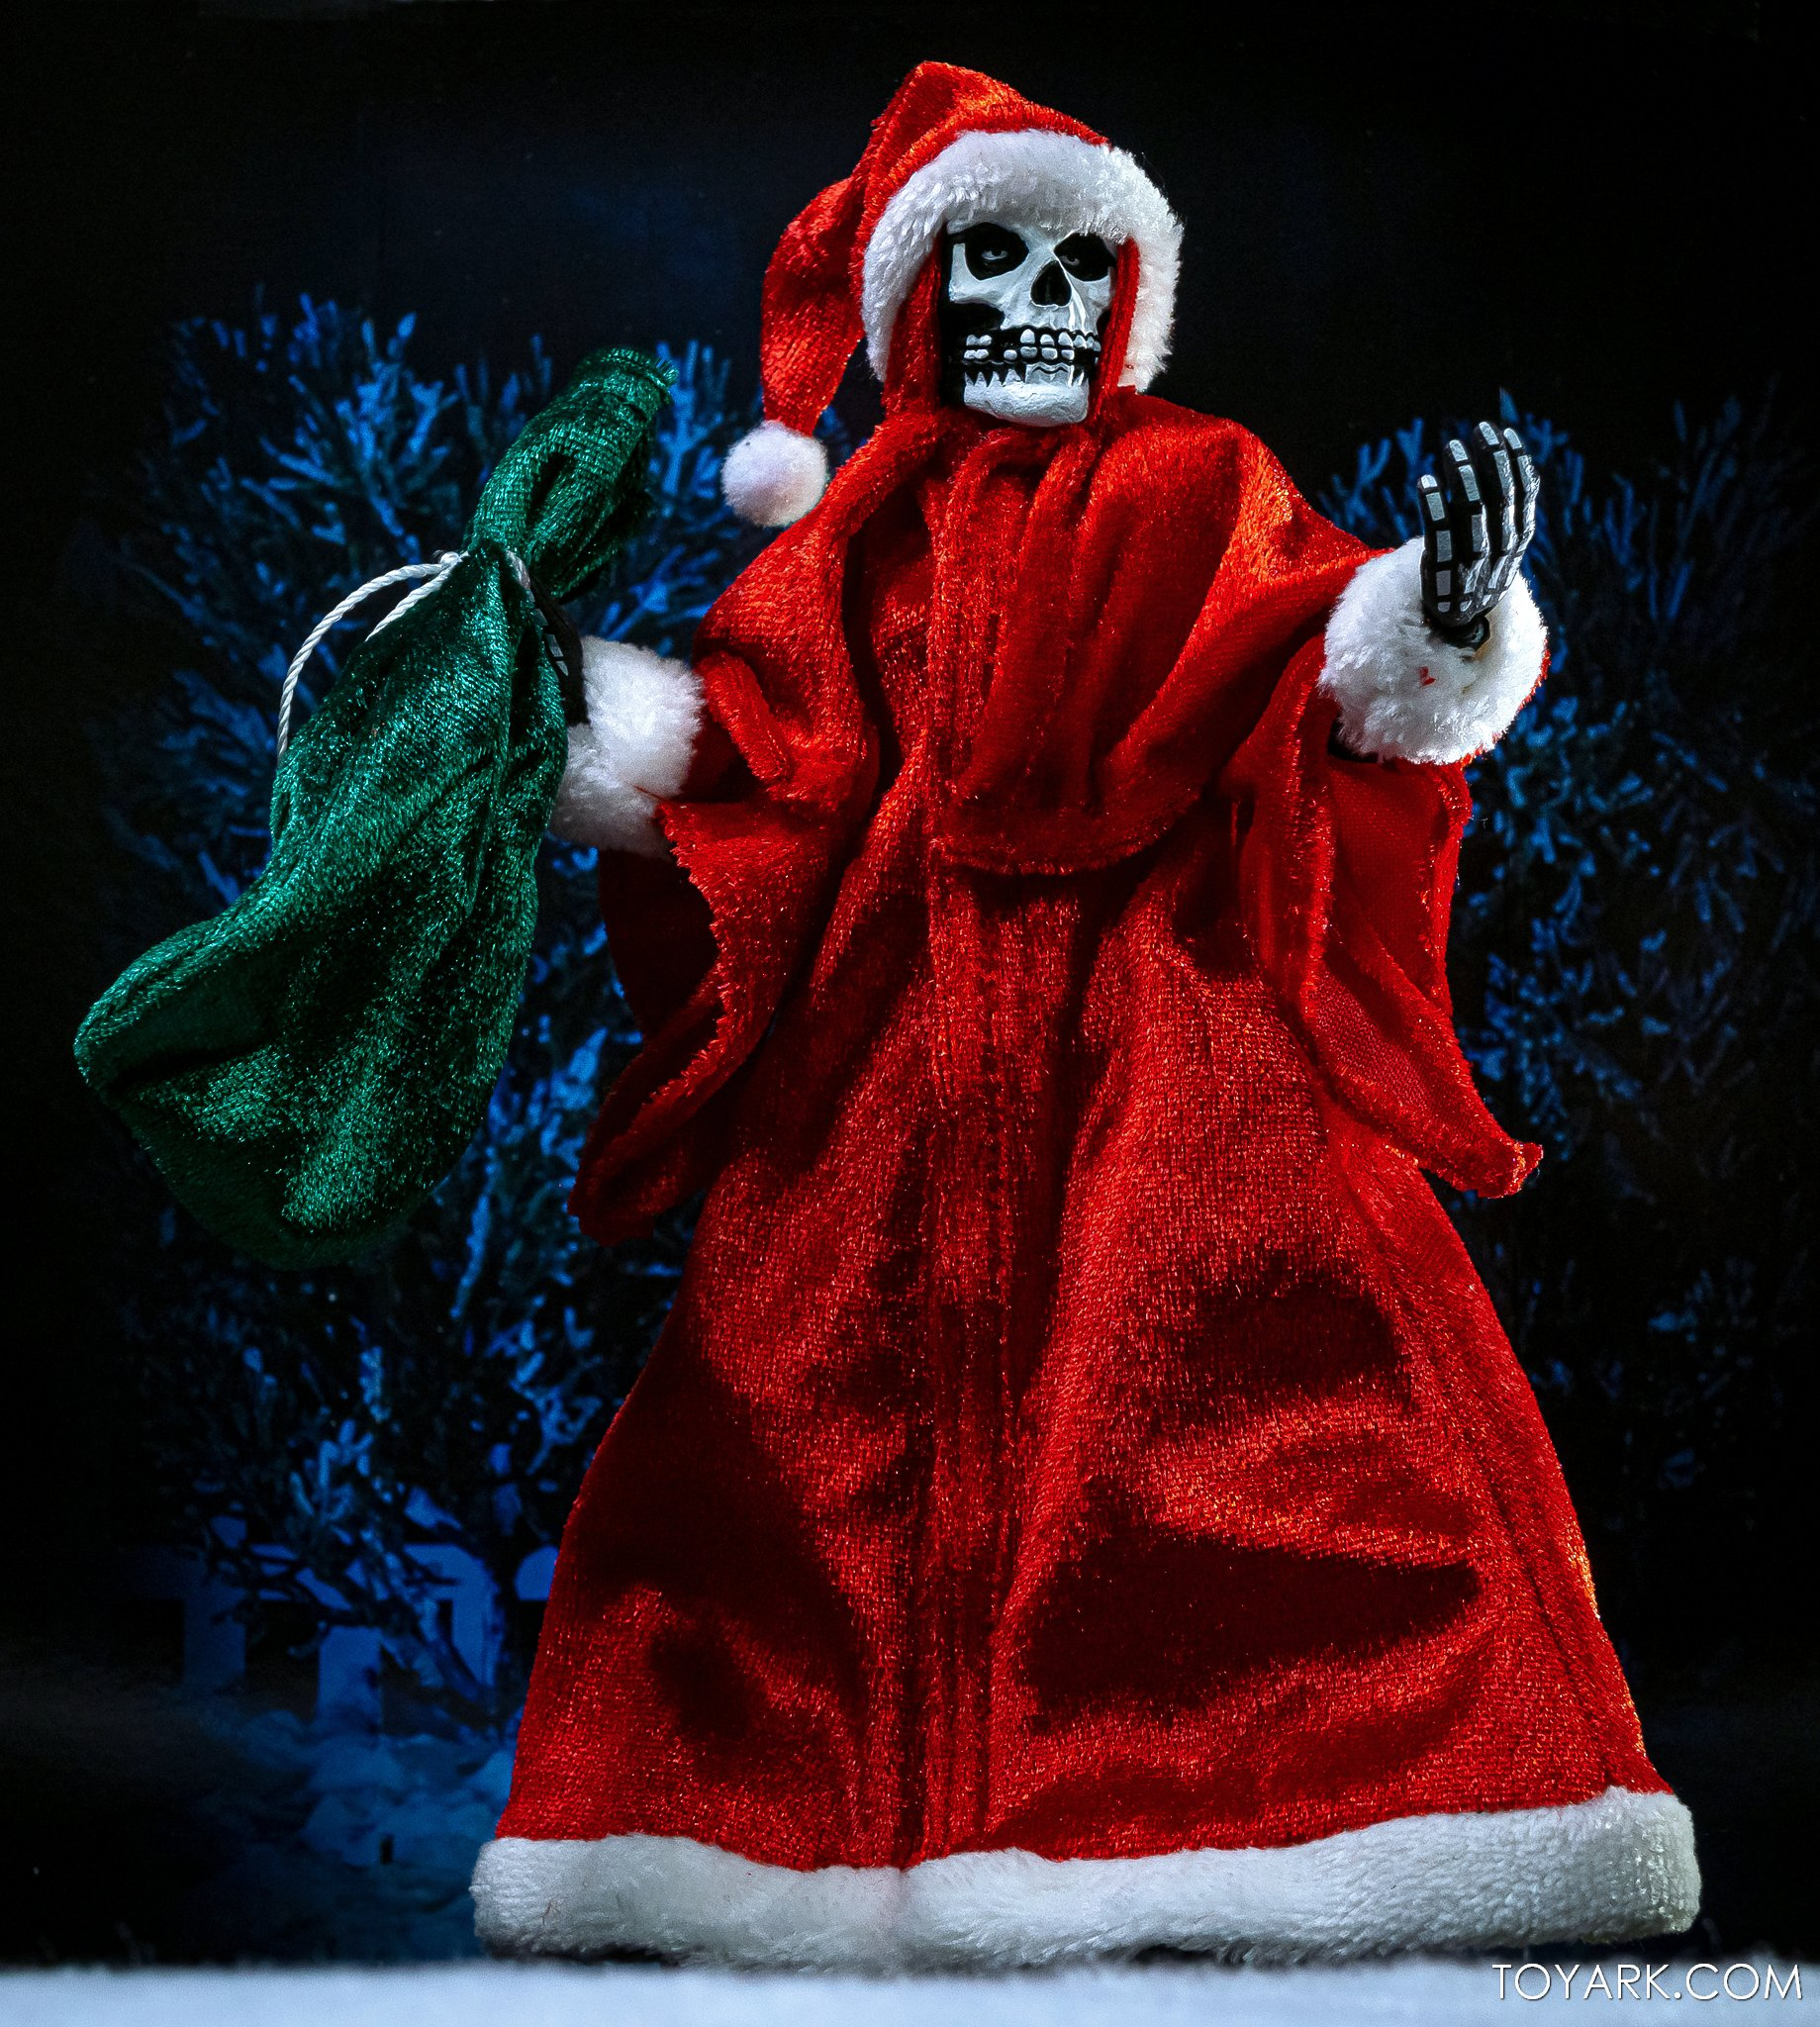 https://news.toyark.com/wp-content/uploads/sites/4/2020/12/NECA-Holiday-Fiend-Figure-013.jpg